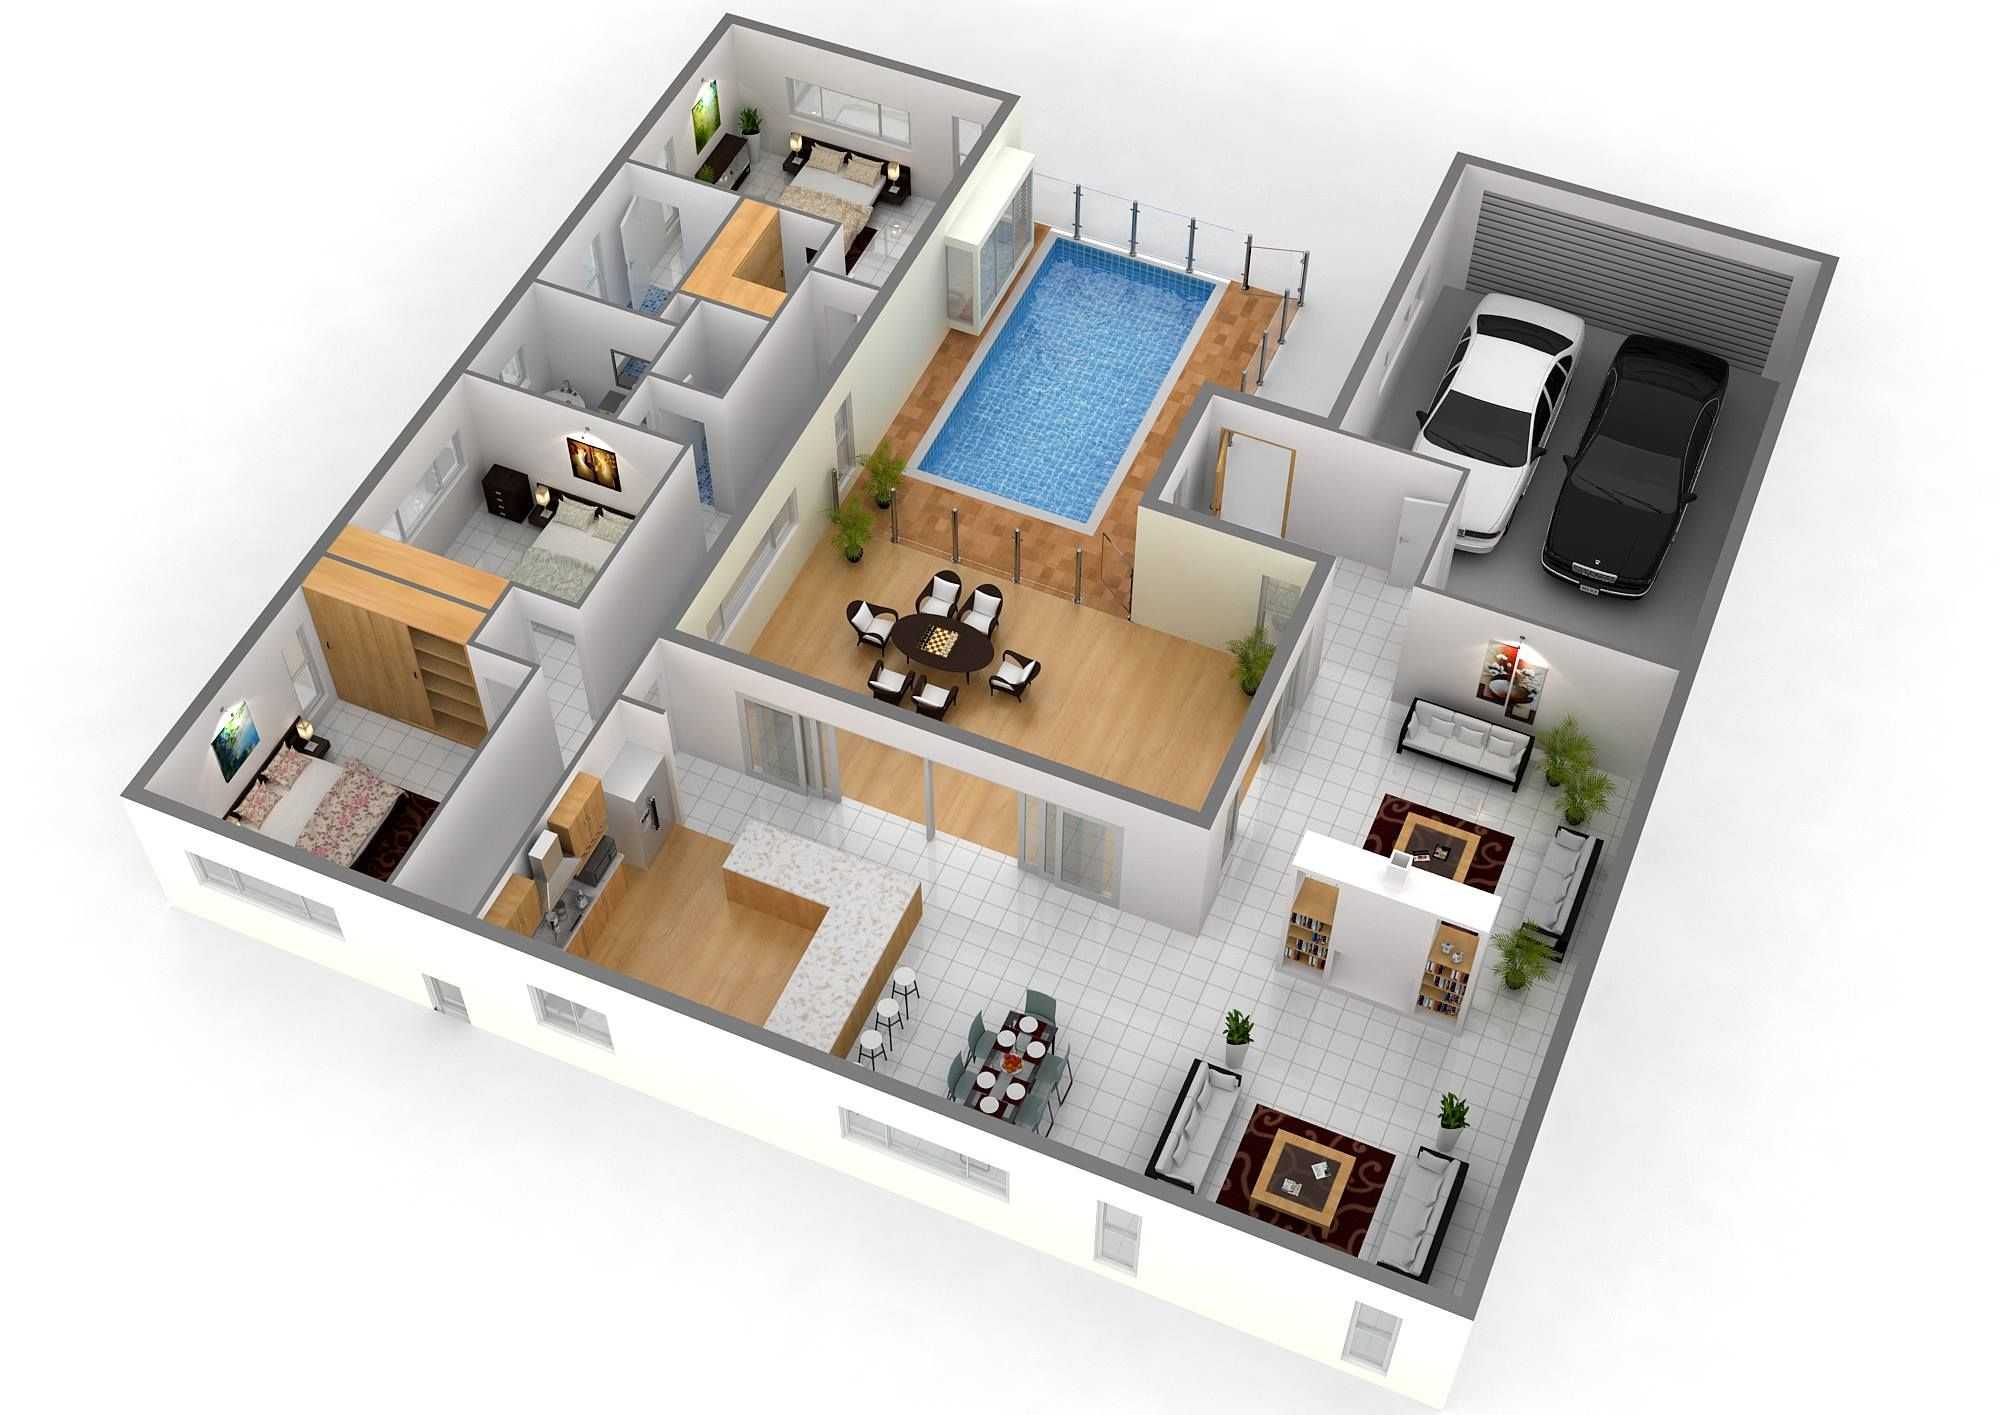 3d Modern Home Design Plans Ideas House Floor Plans 3d House Plans Small House Design